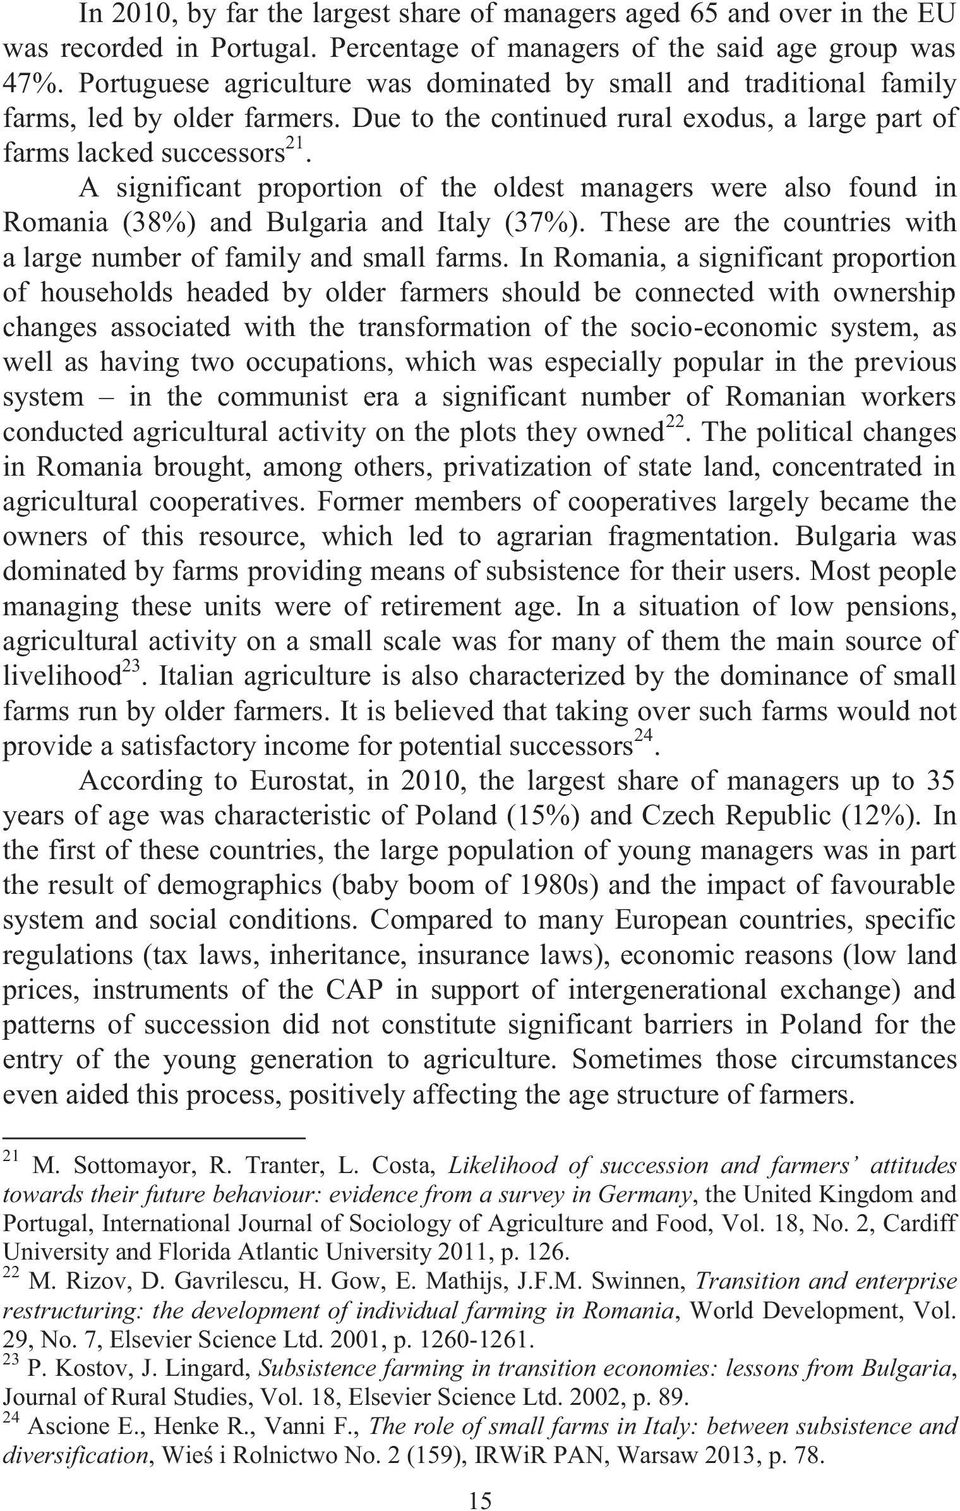 development of individual farming in Romania Subsistence farming in transition